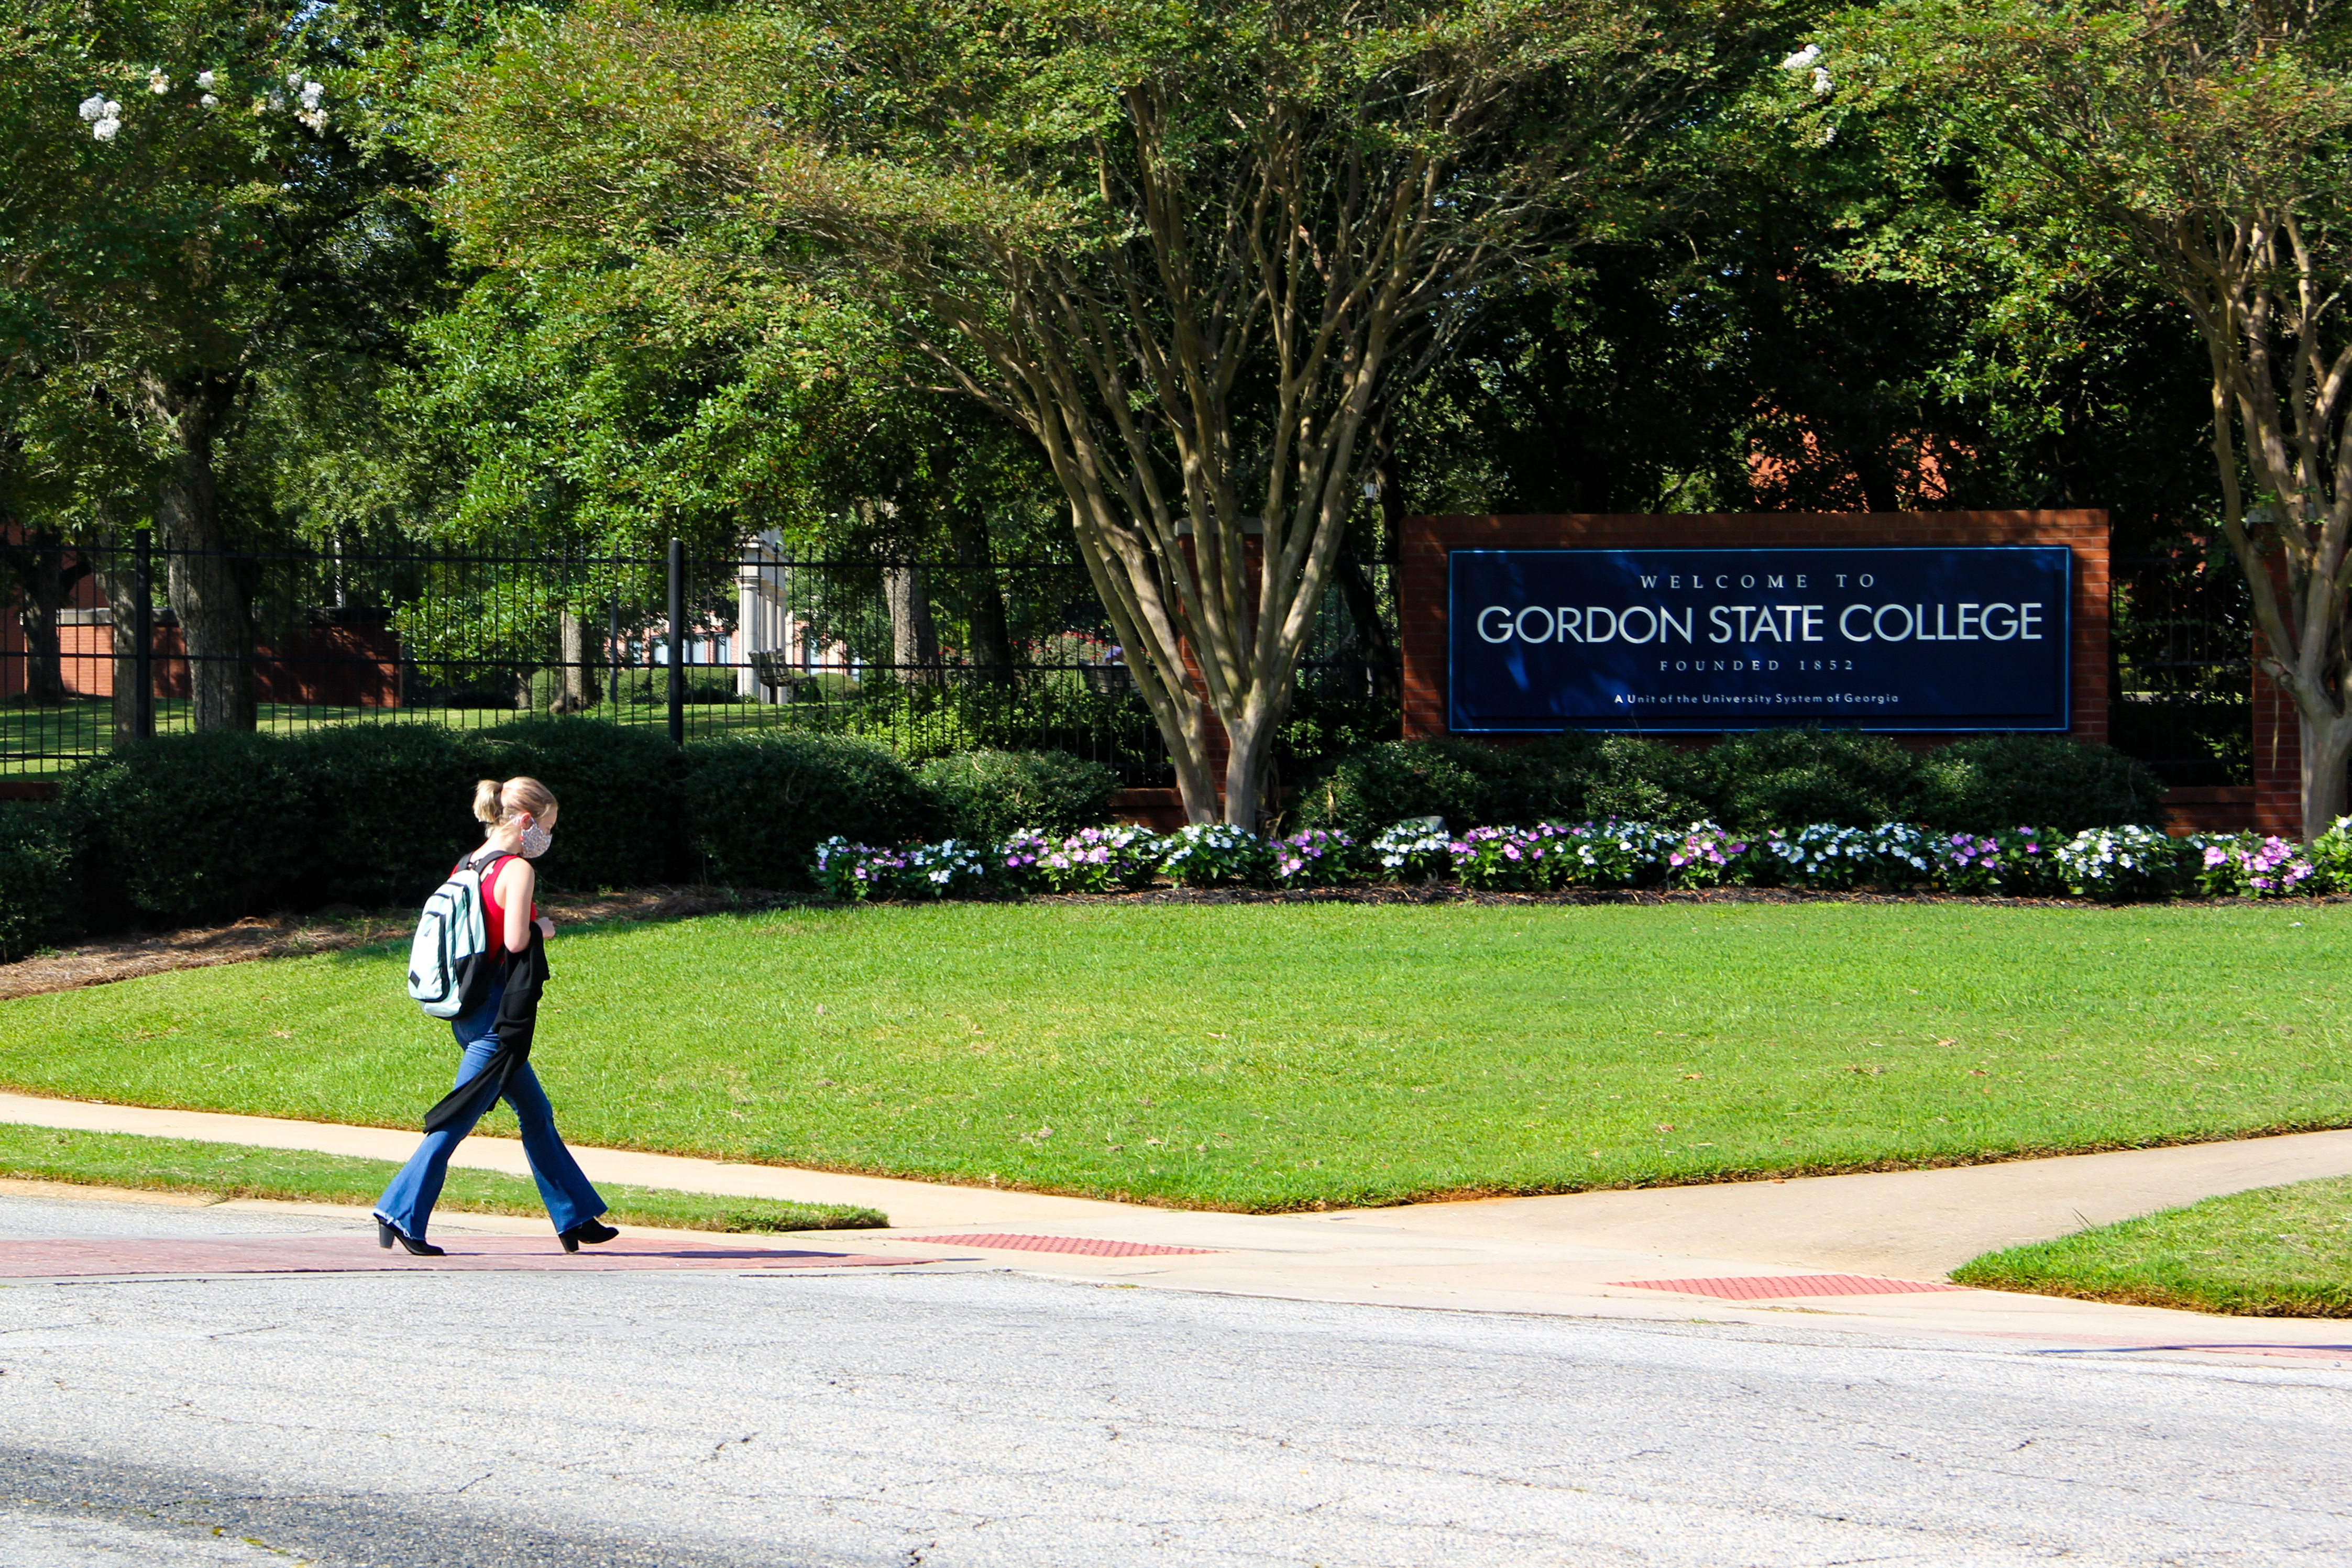 Gordon State College posted a near record retention rate of more than 60-percent increase in returning students.